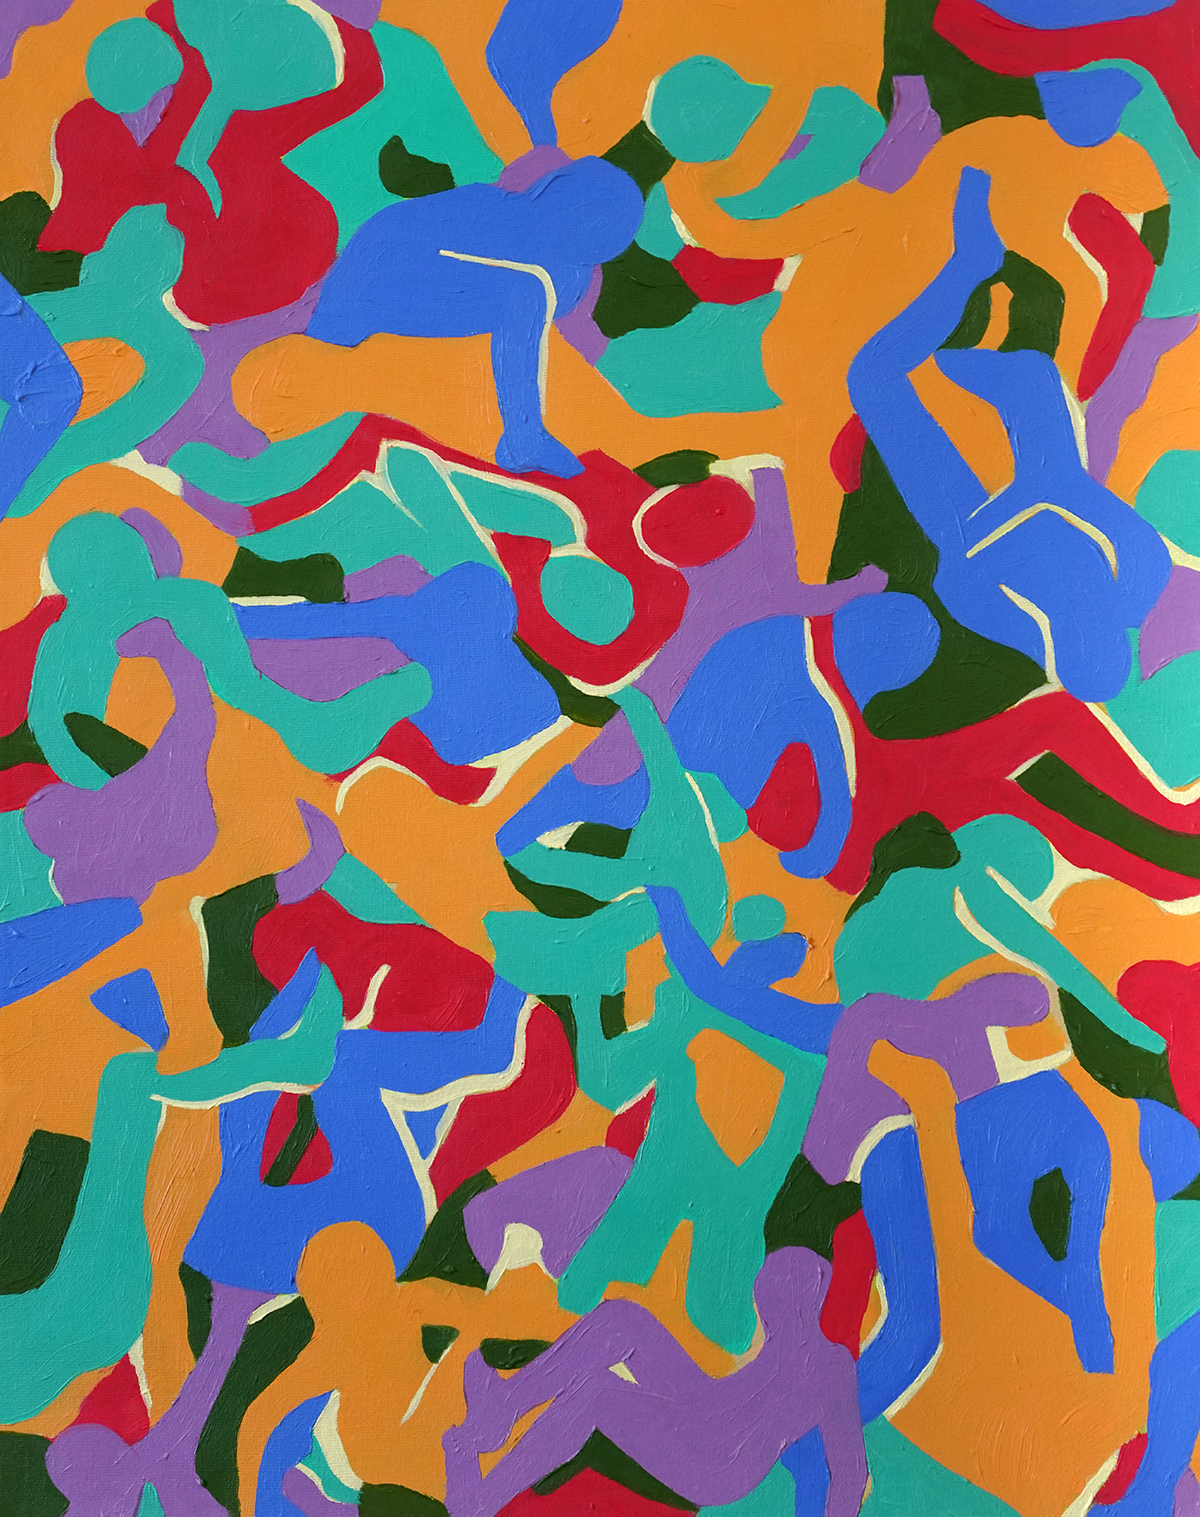 untitled camo 2, 16in x 20in, oil on canvasweb.jpg